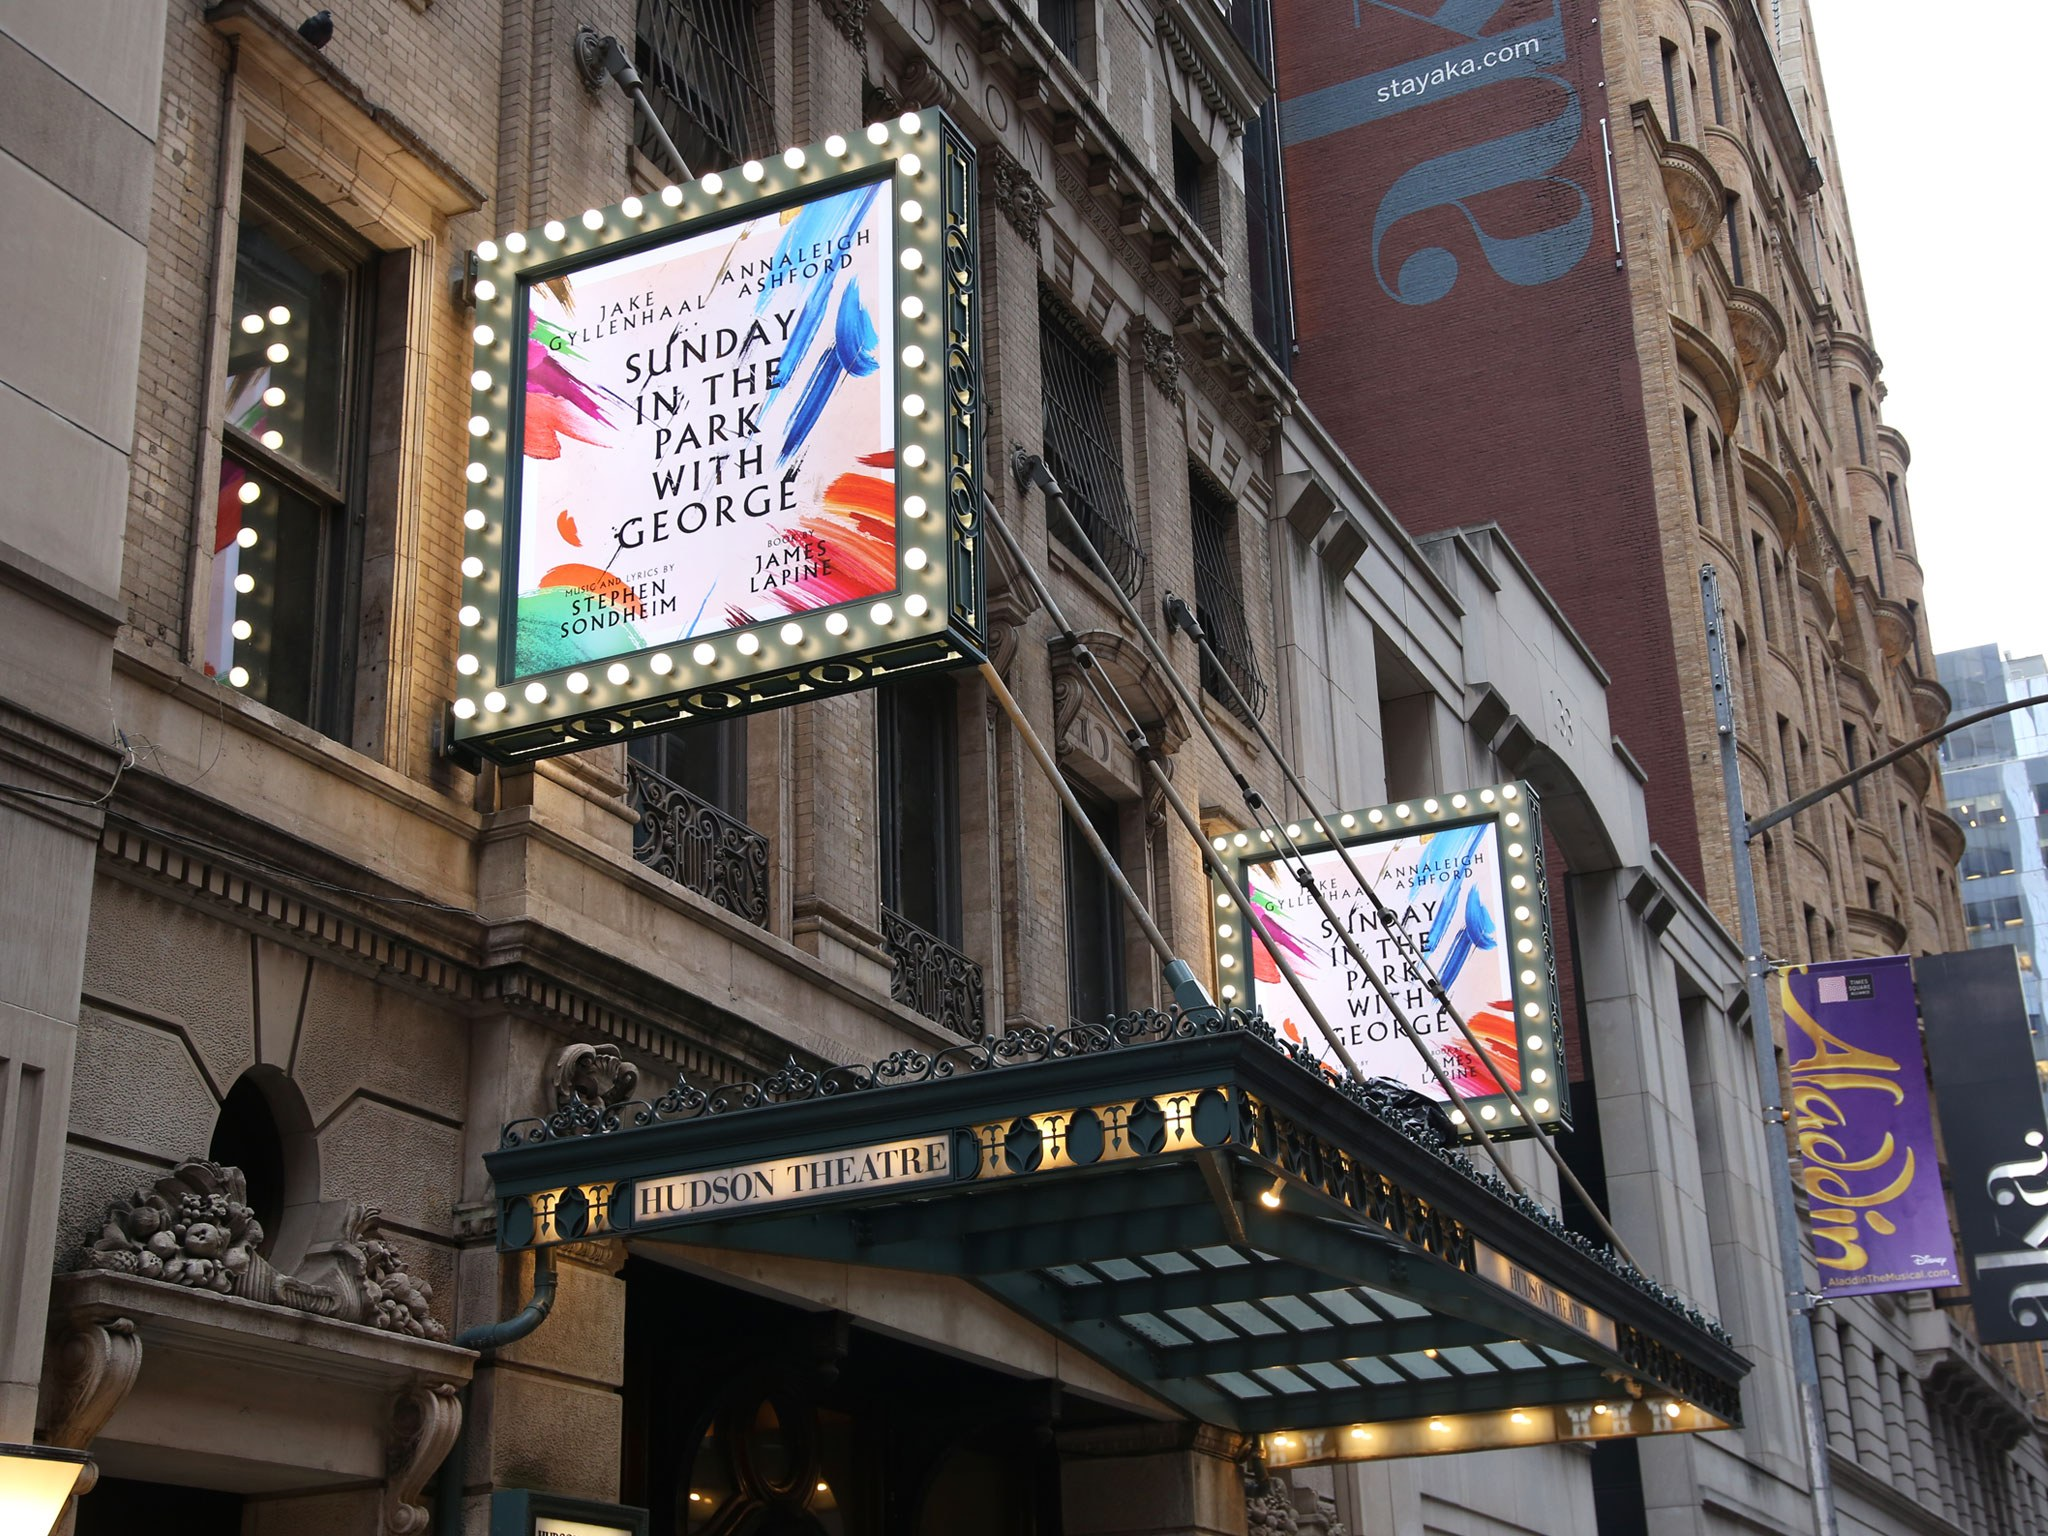 Sunday in the park Broadway Theatre Marquee